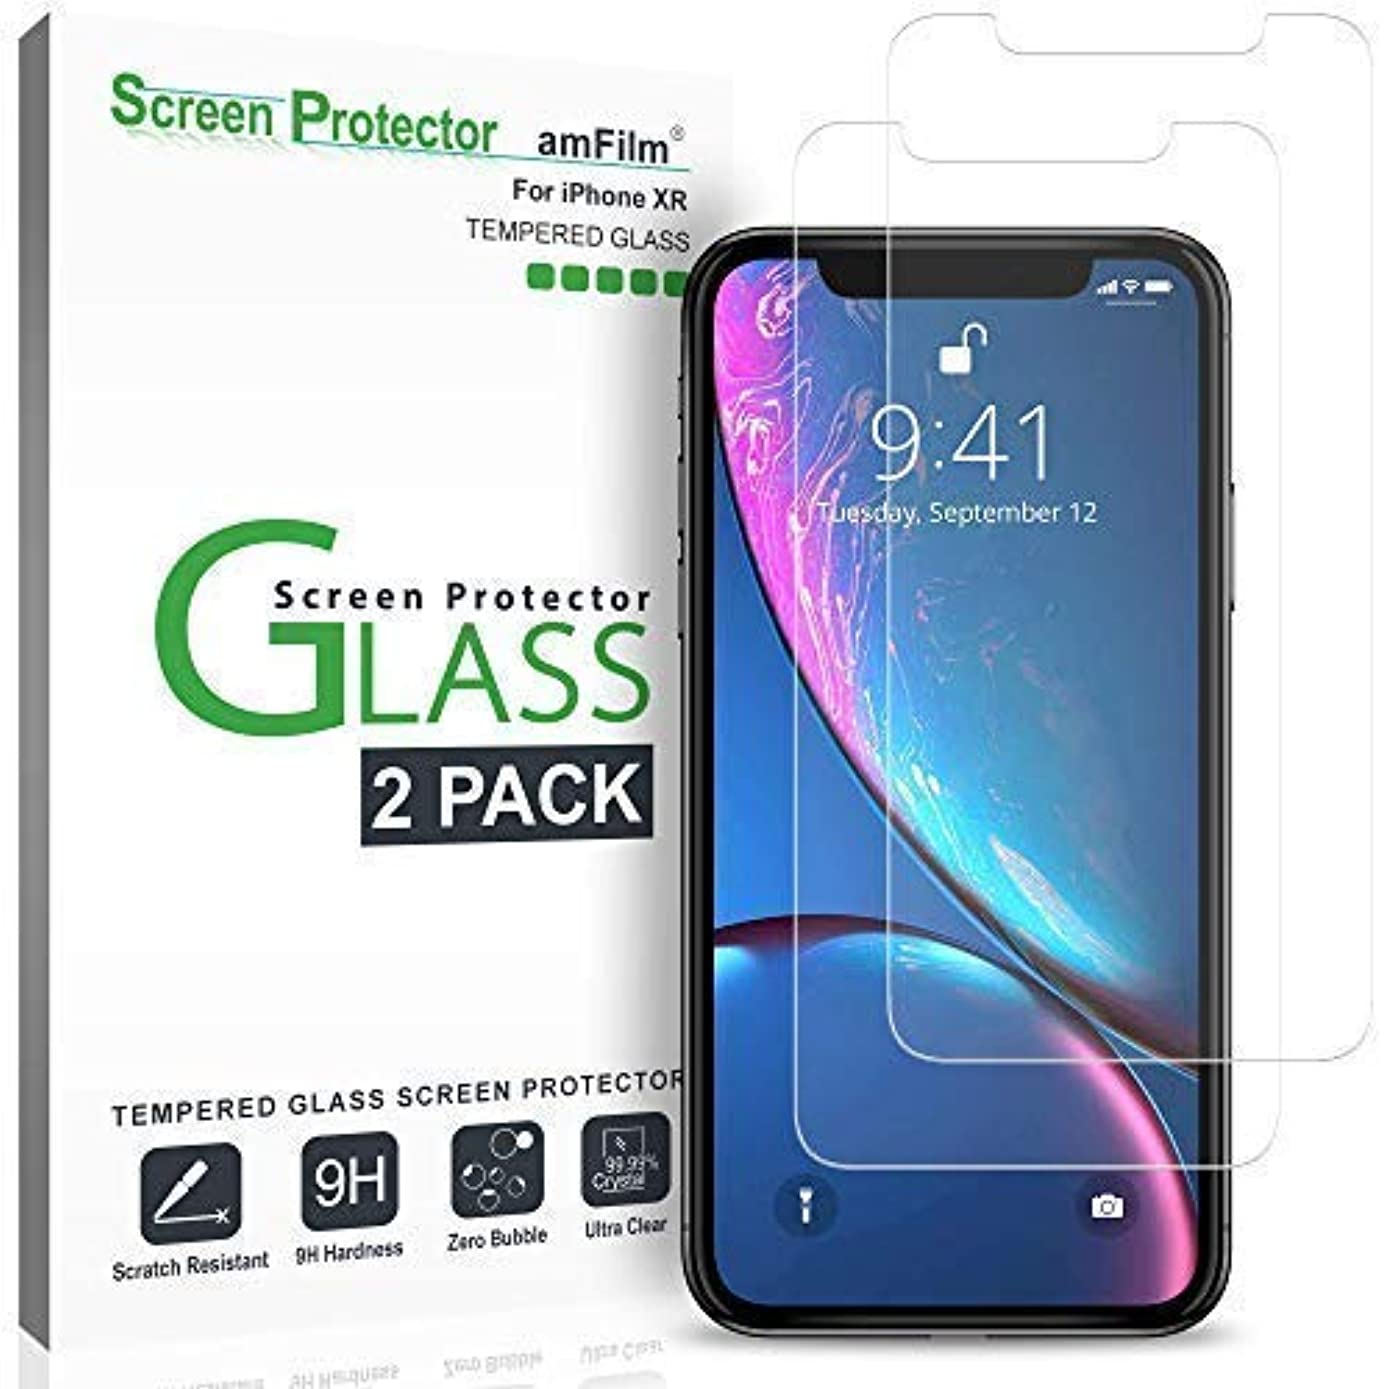 iPhone XR Screen Protector Glass (2-Pack), amFilm iPhone XR 6.1 Tempered Glass Screen Protector with Easy Installation Tray for Apple iPhone XR (6.1